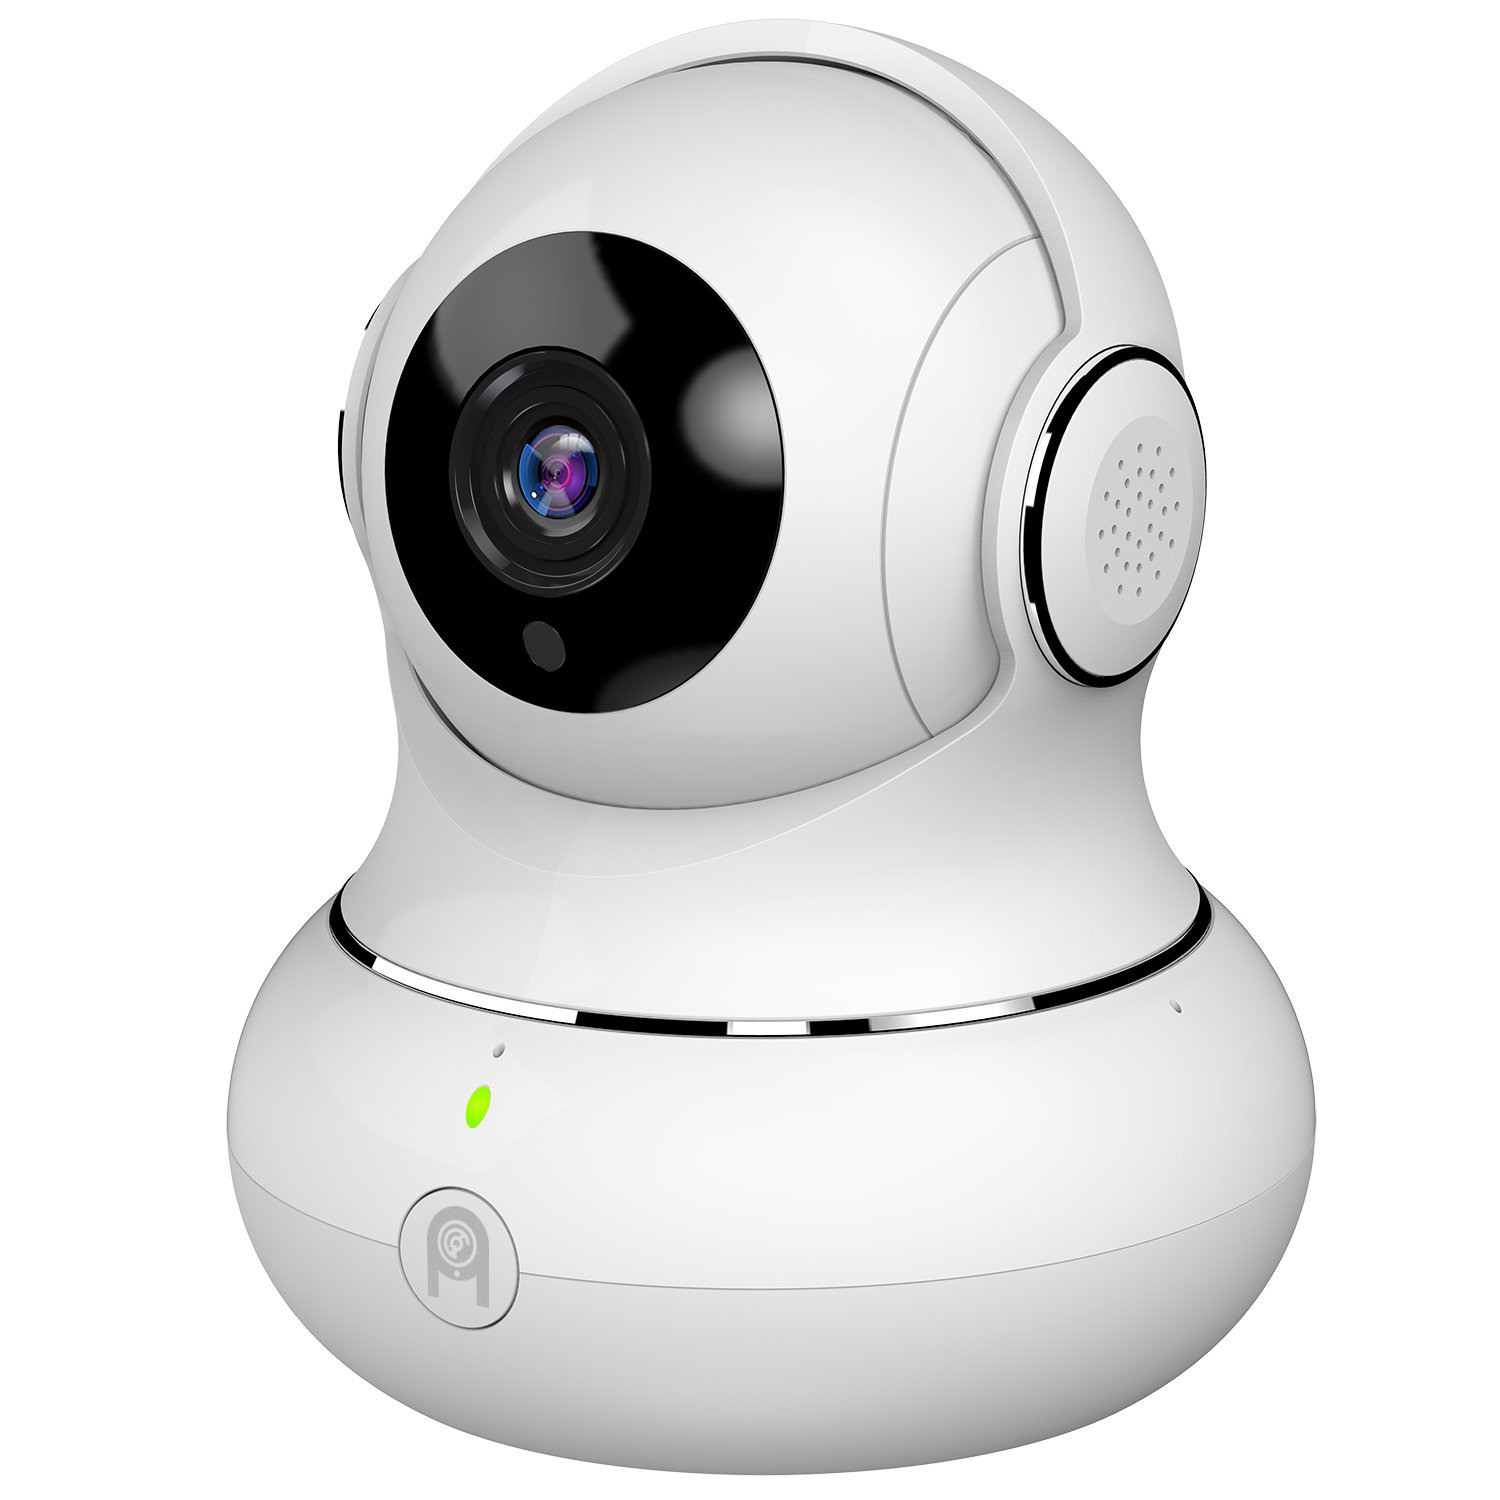 1080P HD WiFi Pan Tilt Camera 360 View Night Vision Two-Way Audio Nanny Security Spy Cam